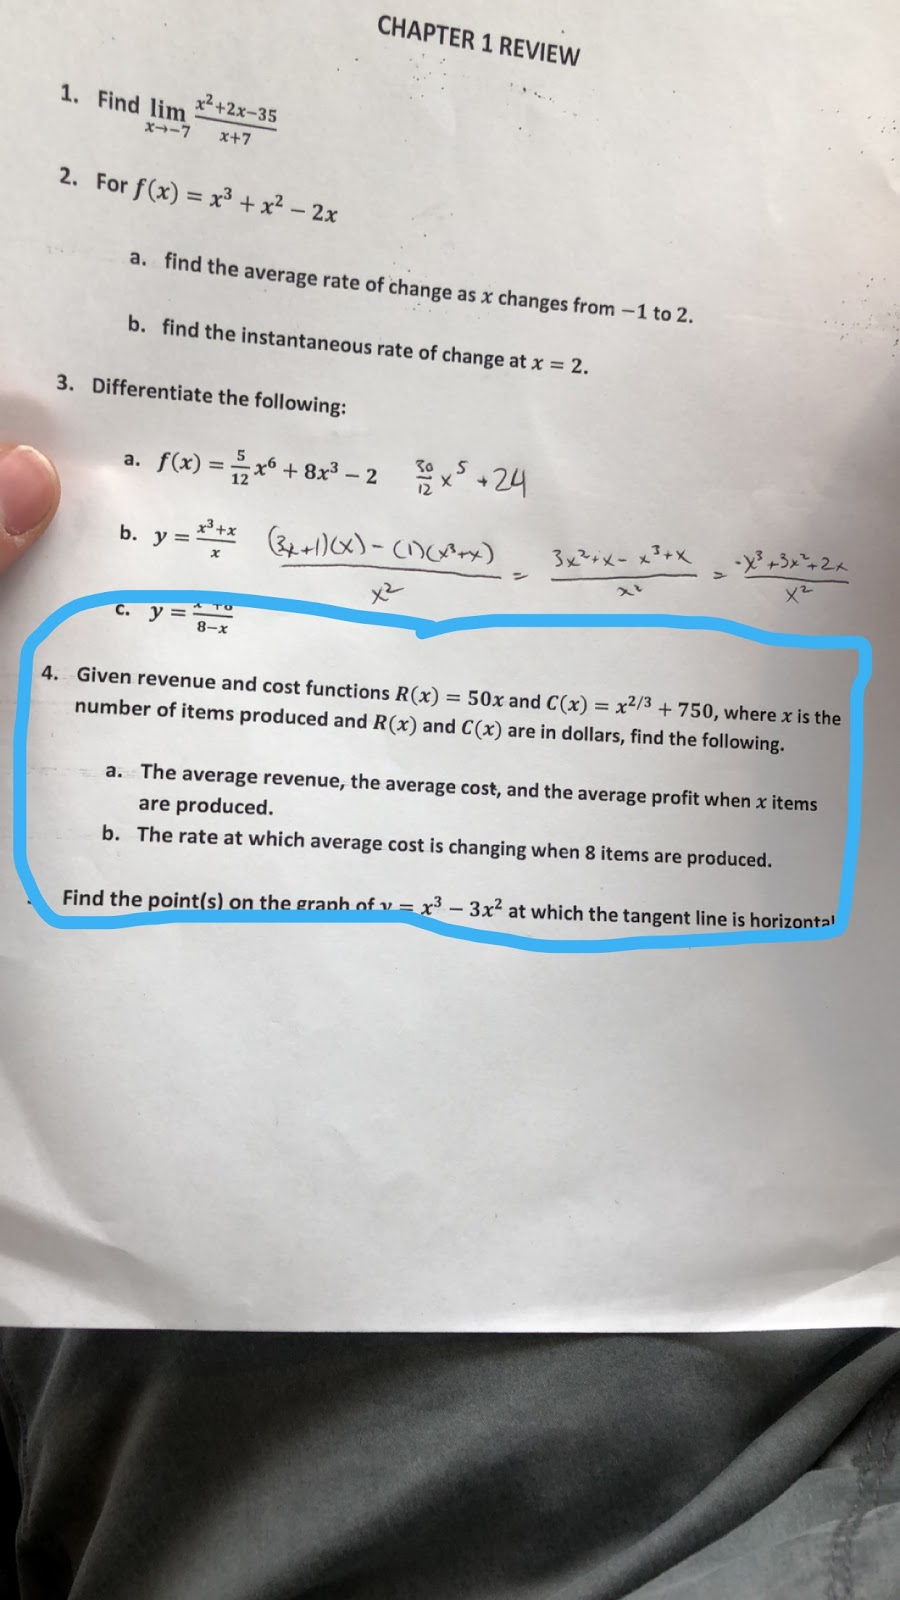 CHAPTER 1 REVIEW 1. Find lim x2 +2x-35 x--7 x+7 2. For f(x) = x³ + x² – 2x %3D find the average rate of change as x changes from -1 to 2. a. b. find the instantaneous rate of change at x = 2. Differentiate the following: 3. x +24 a. f(x) = x + 8x² – 2 x3+x 3x²rx- x3+x b. y =** +1)x)-cDcx) * TO c. y = 8-x x2/3 + 750, where x is the 4. Given revenue and cost functions R(x) = 50x and C(x) number of items produced and R(x) and C(x) are in dollars, find the following. The average revenue, the average cost, and the average profit when x items a. are produced. b. The rate at which average cost is changing when 8 items are produced. Find the point(s) on the graph of v = x³ - 3x2 at which the tangent line is horizontal